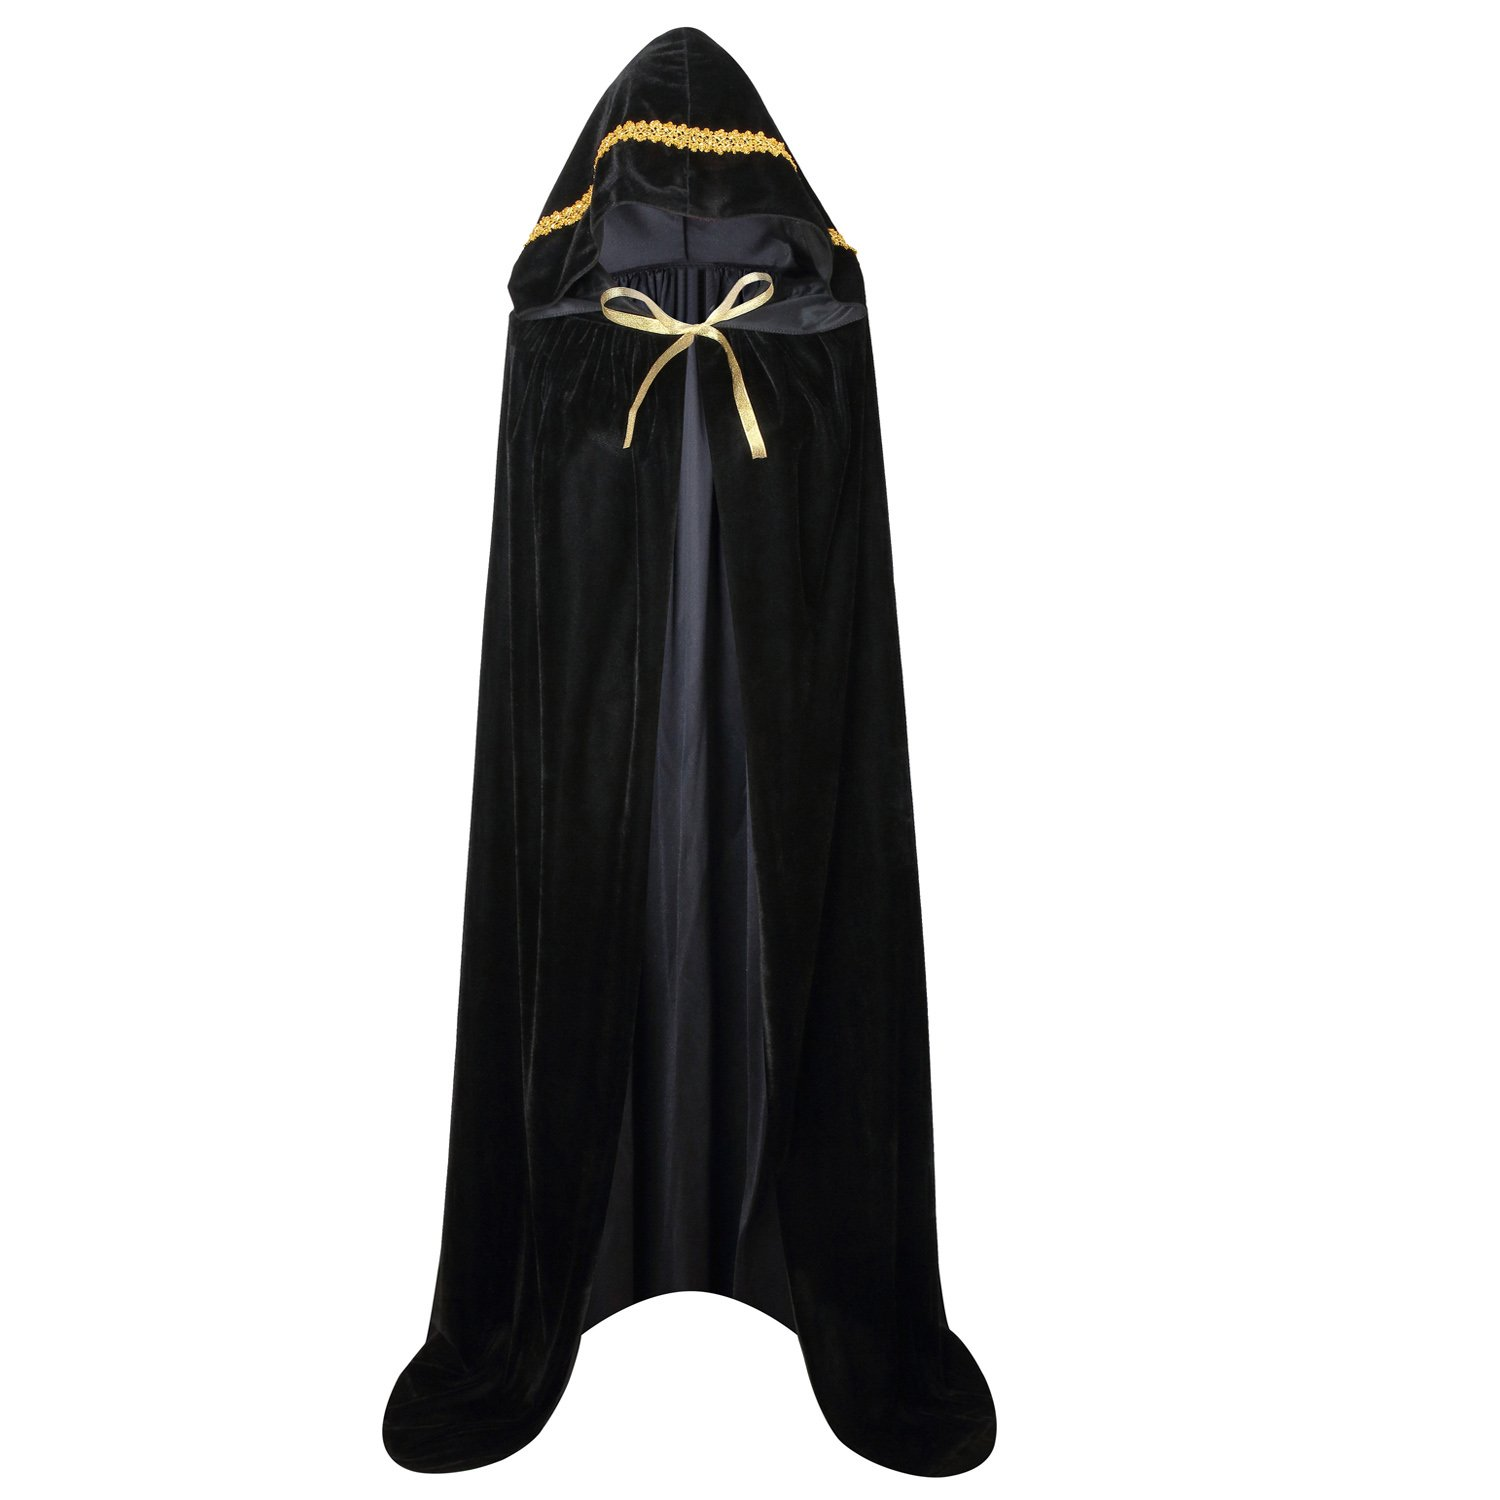 Ourlove Fashion Unisex Full Length Hooded Robe Cloak Long Velvet Cape Cosplay Costume 59'' (Black (Lace))